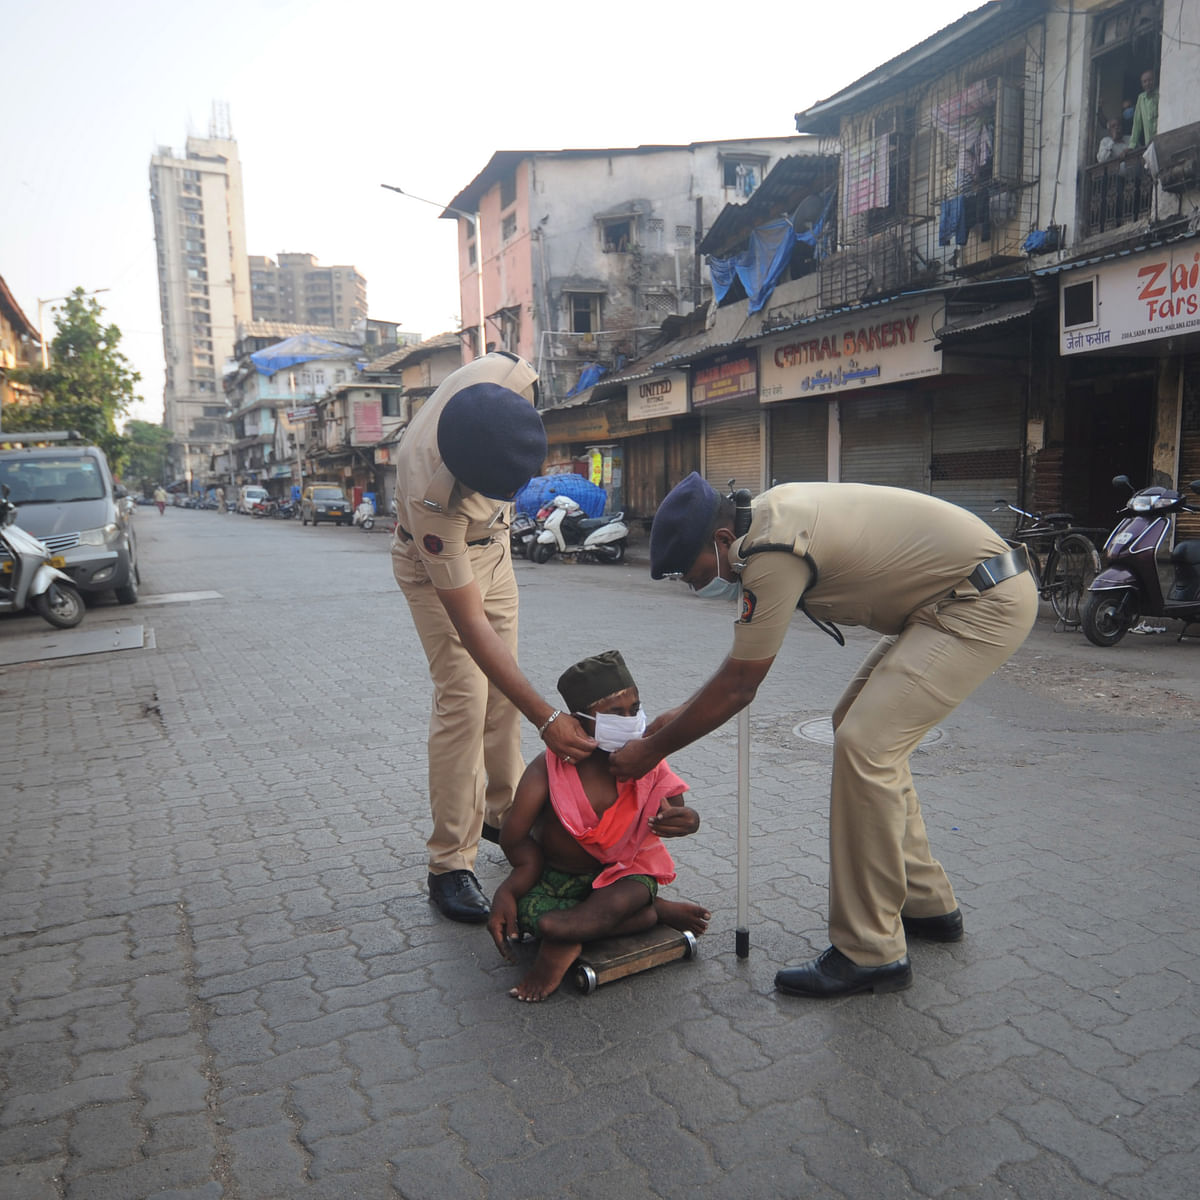 Kolhapur: Police saves a labourer who fell unconscious due to hunger